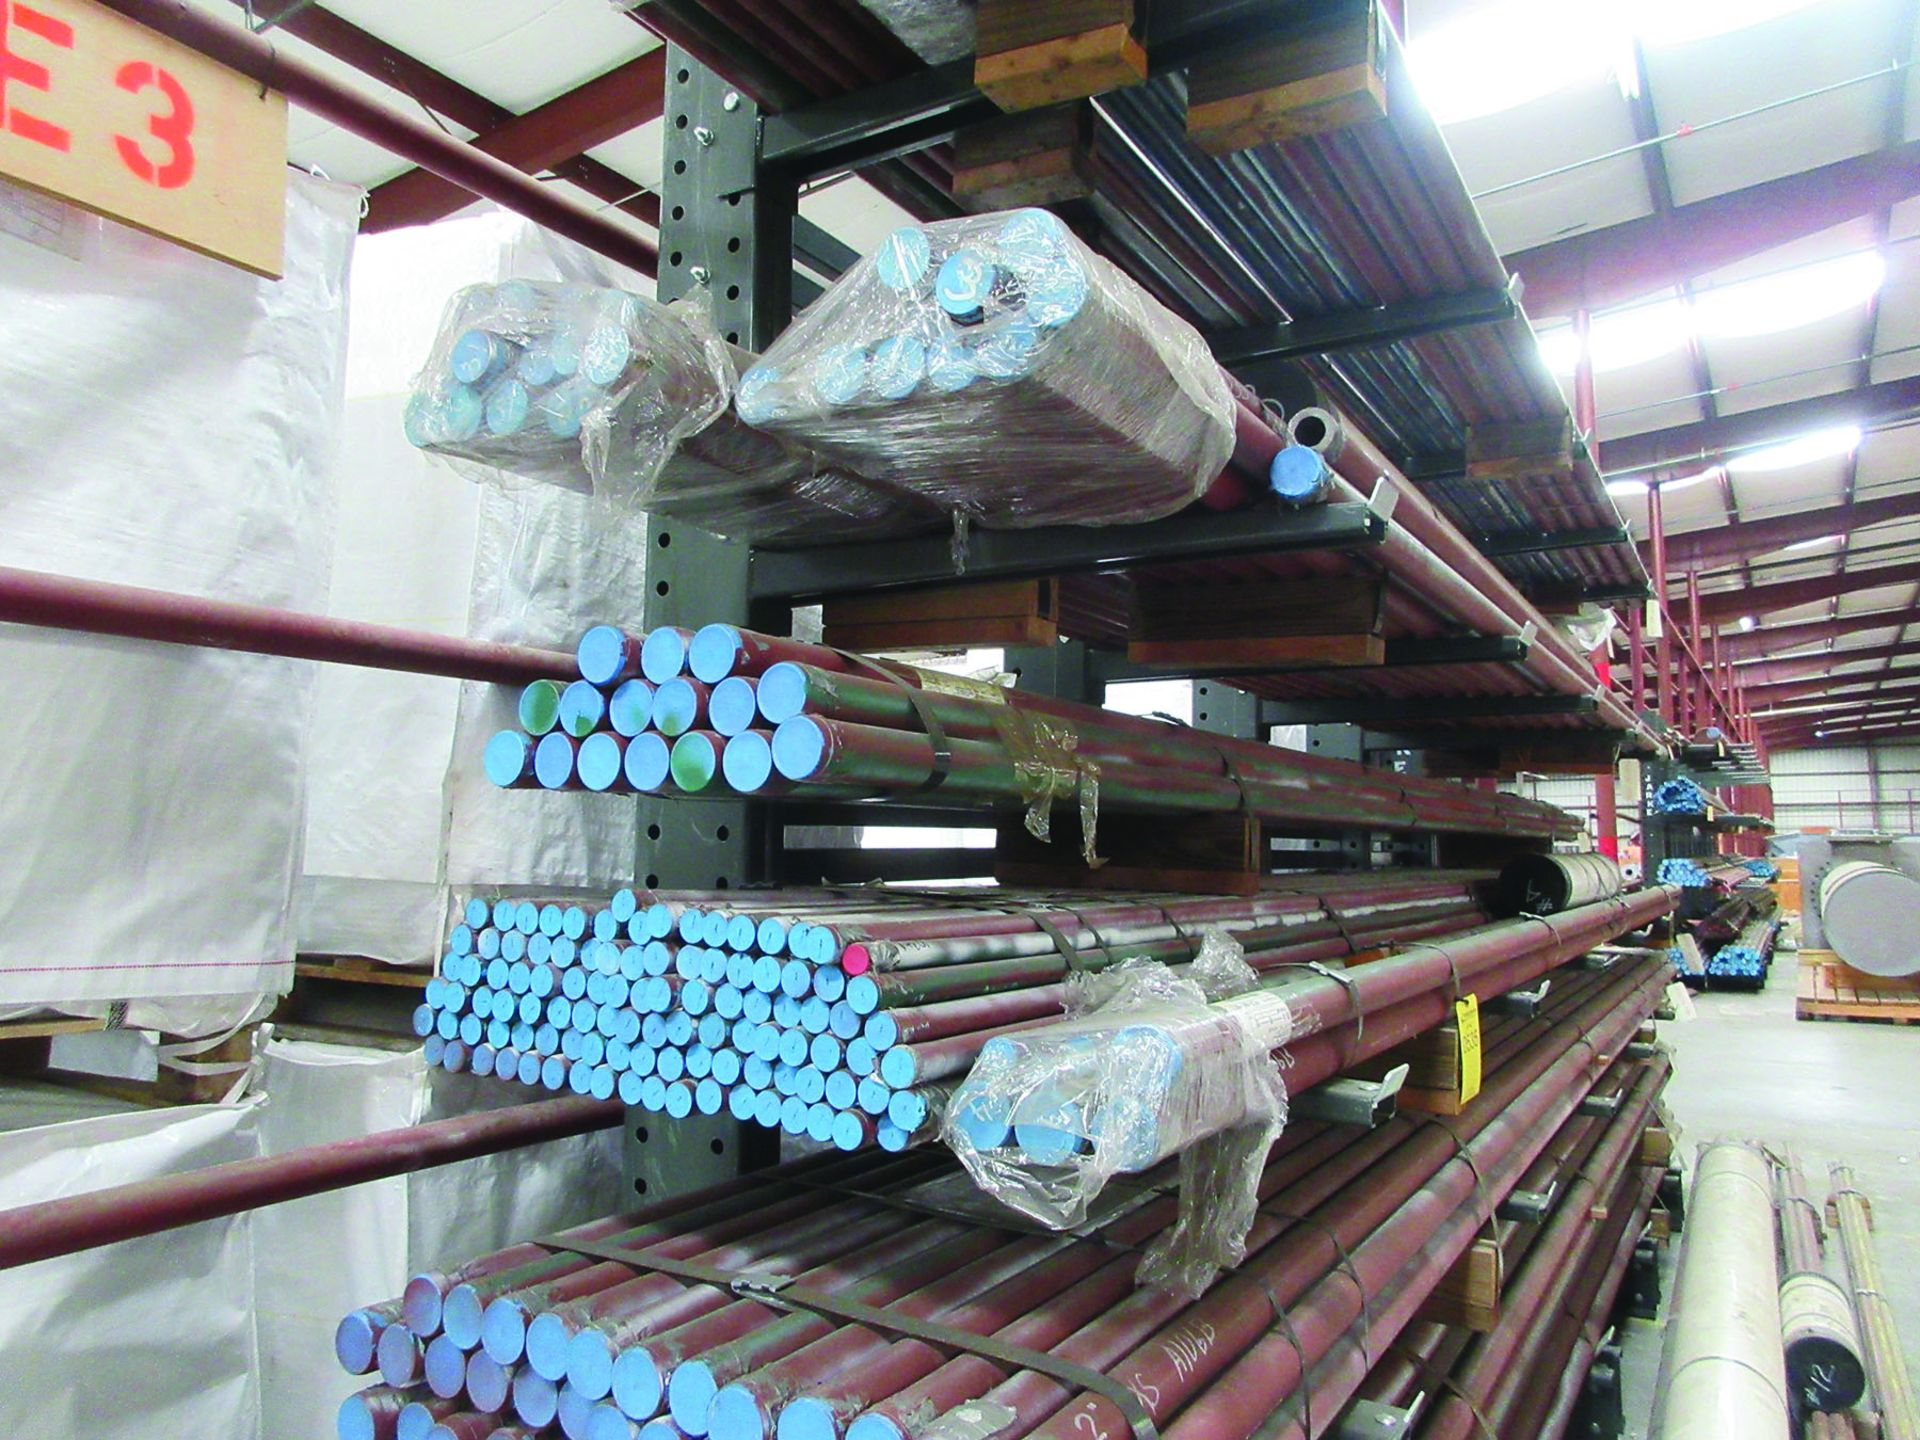 CANTILEVER RACK W/CONTENT: 120'' X 48'' X 202'', BUNDLES OF PIPE; 3/4'', 1'', 1 1/2'', 2'', MOST - Image 4 of 17